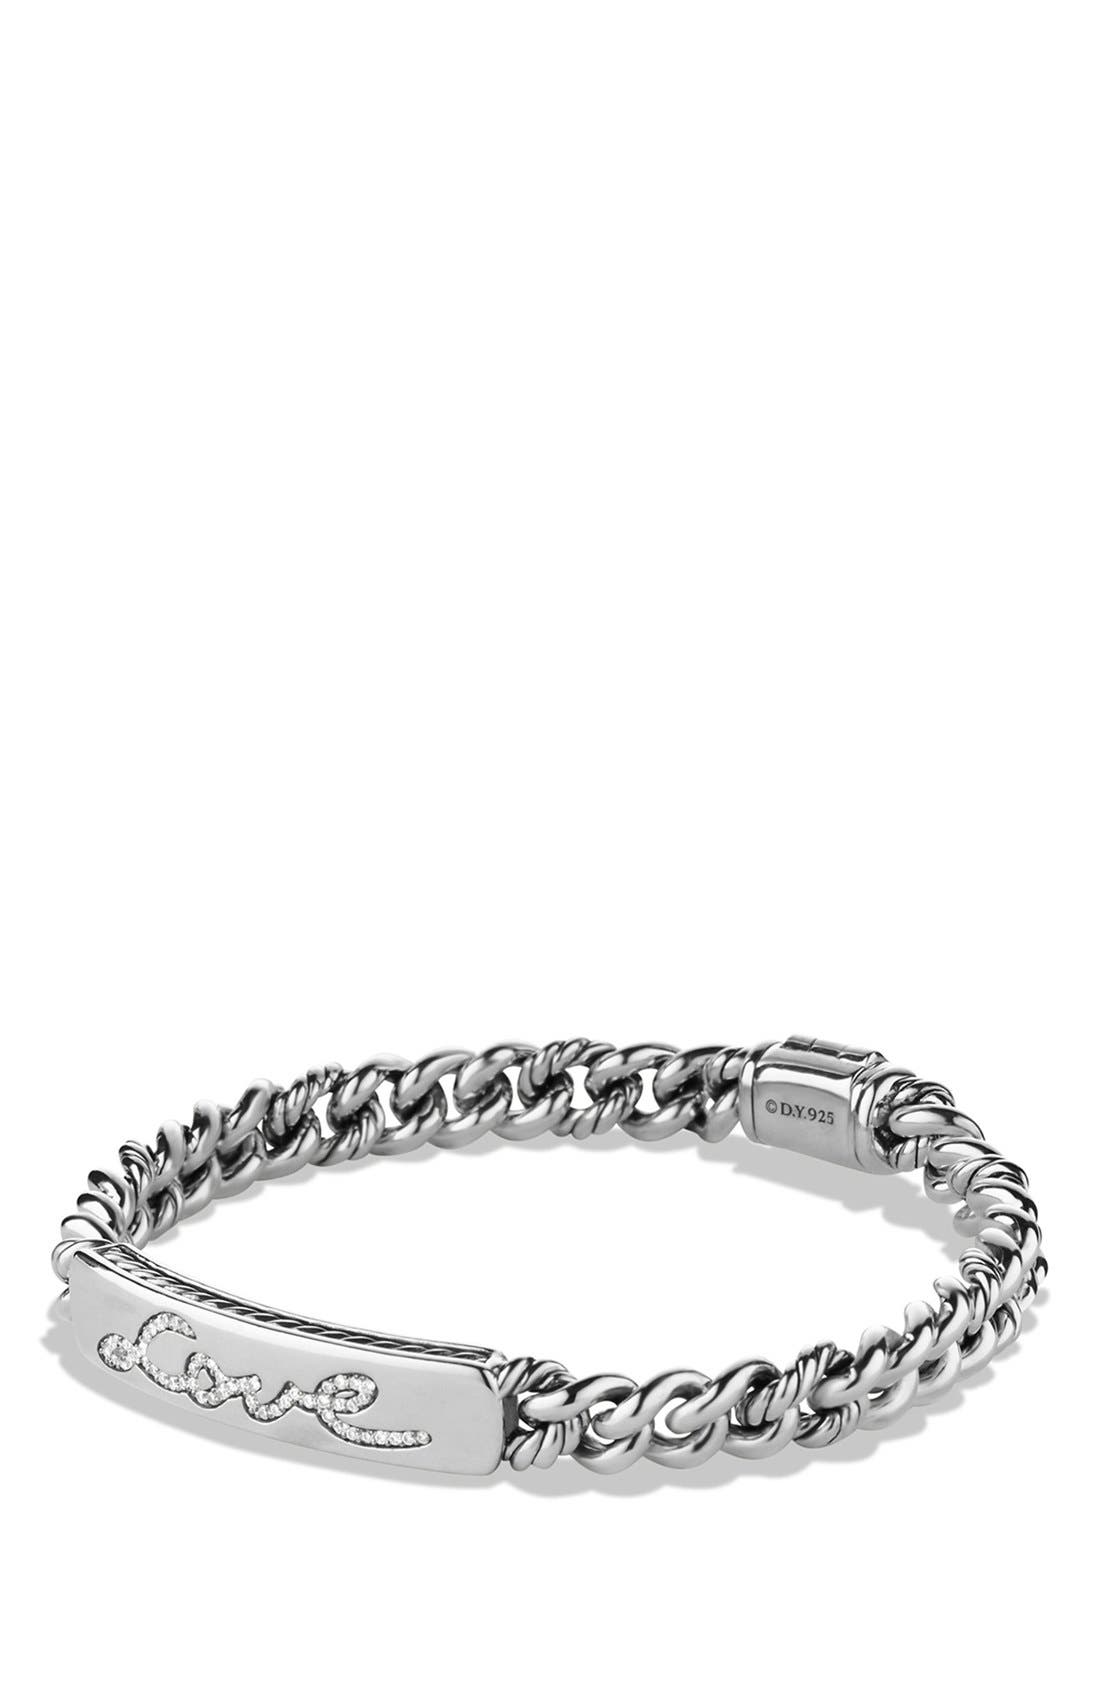 Main Image - David Yurman 'Petite Pavé' Love ID Bracelet with Diamonds